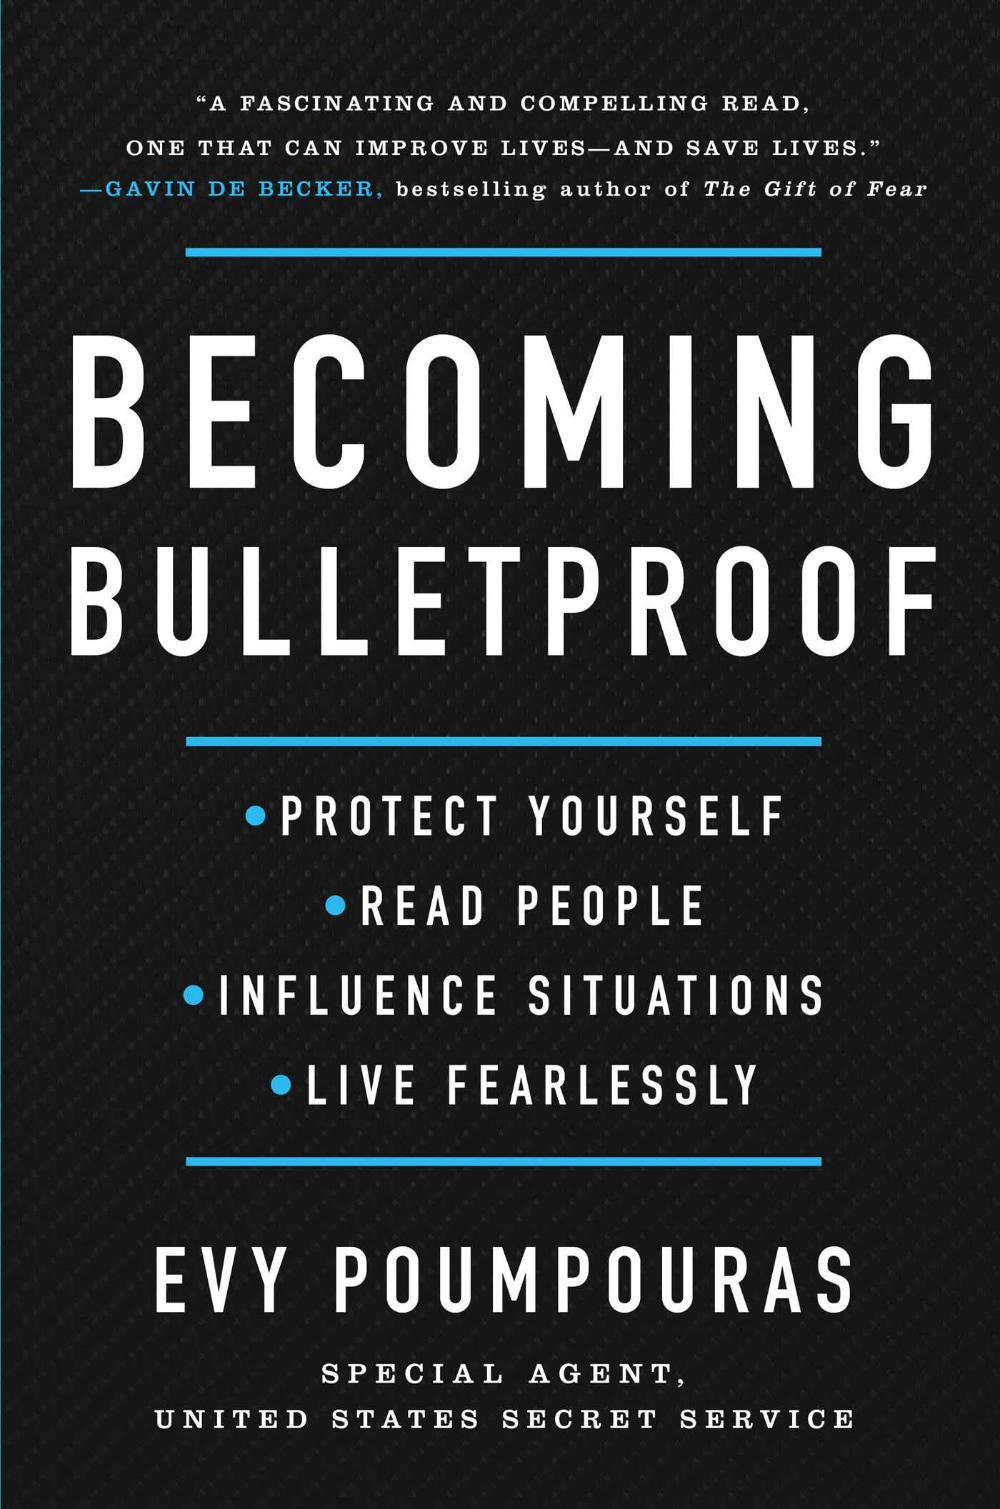 Becoming Bulletproof Protect Yourself Read People Influence Situations And Live Fearlessly Poumpouras Inspirational Books Psychology Books Self Help Books